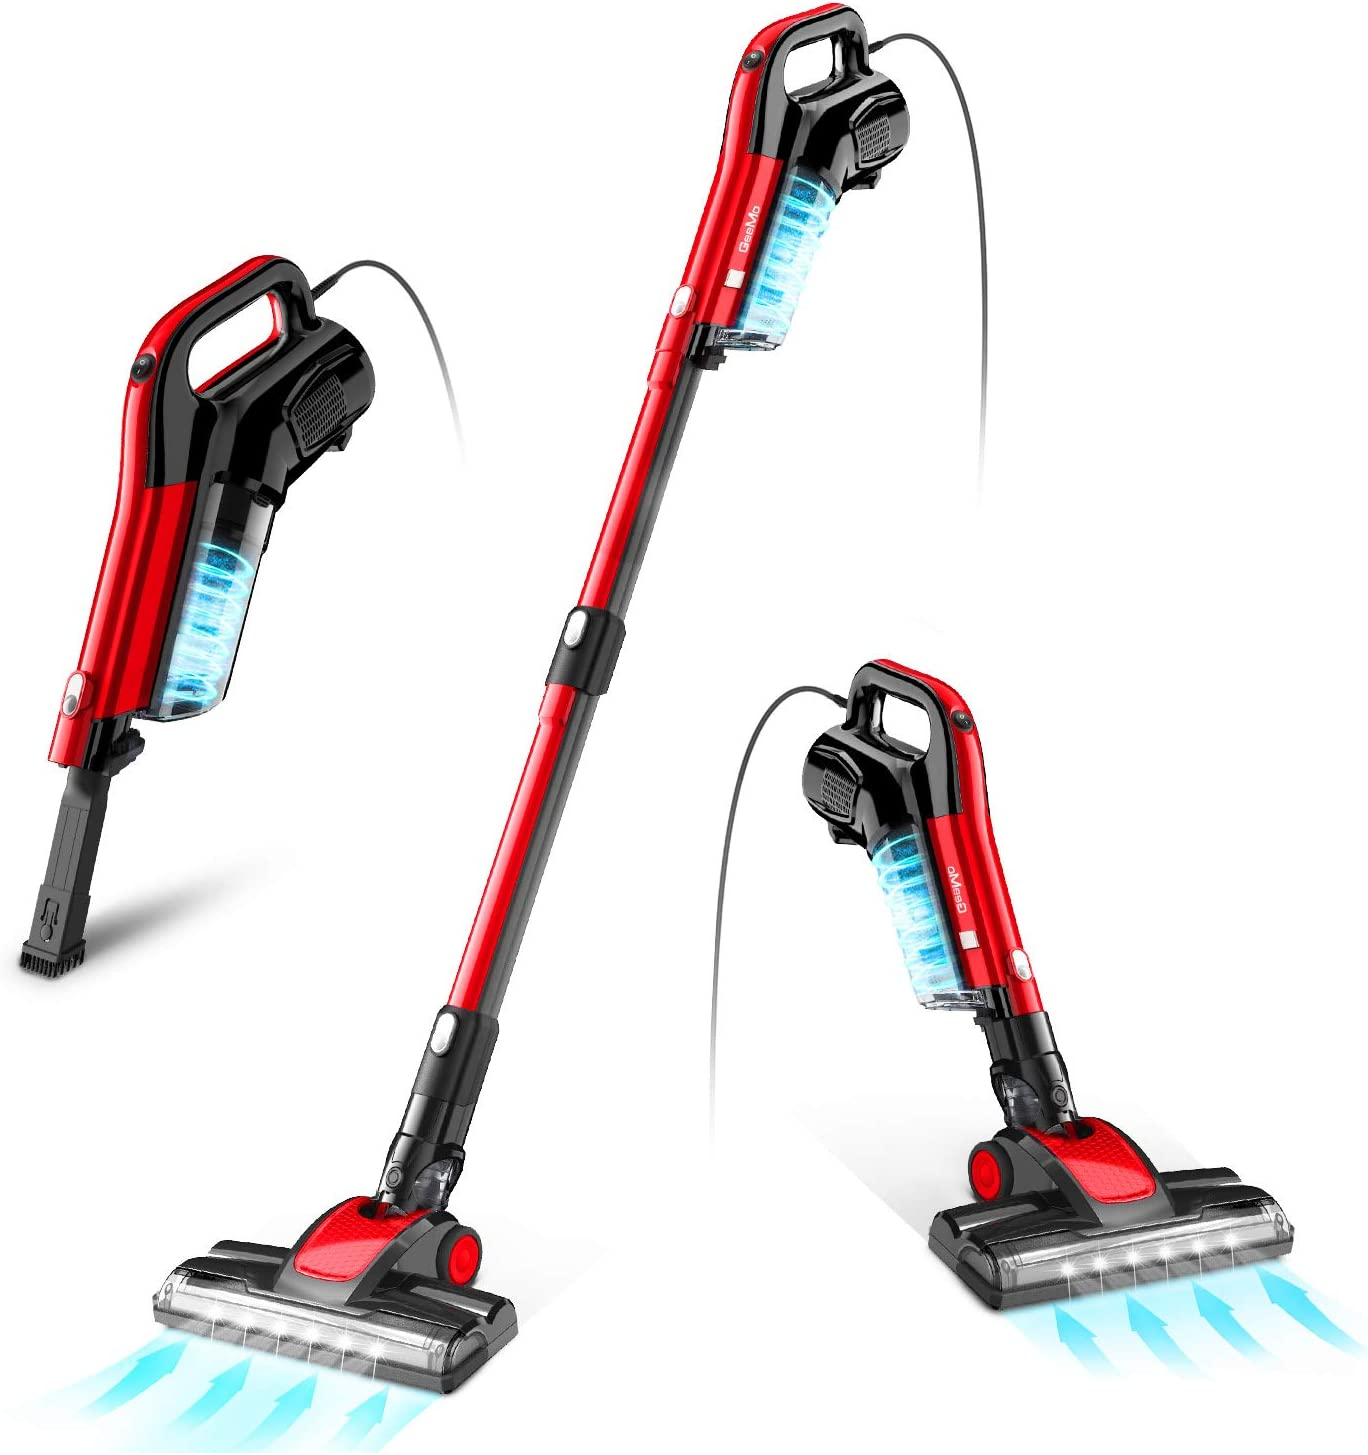 Best 7 corded Vacuum cleaners